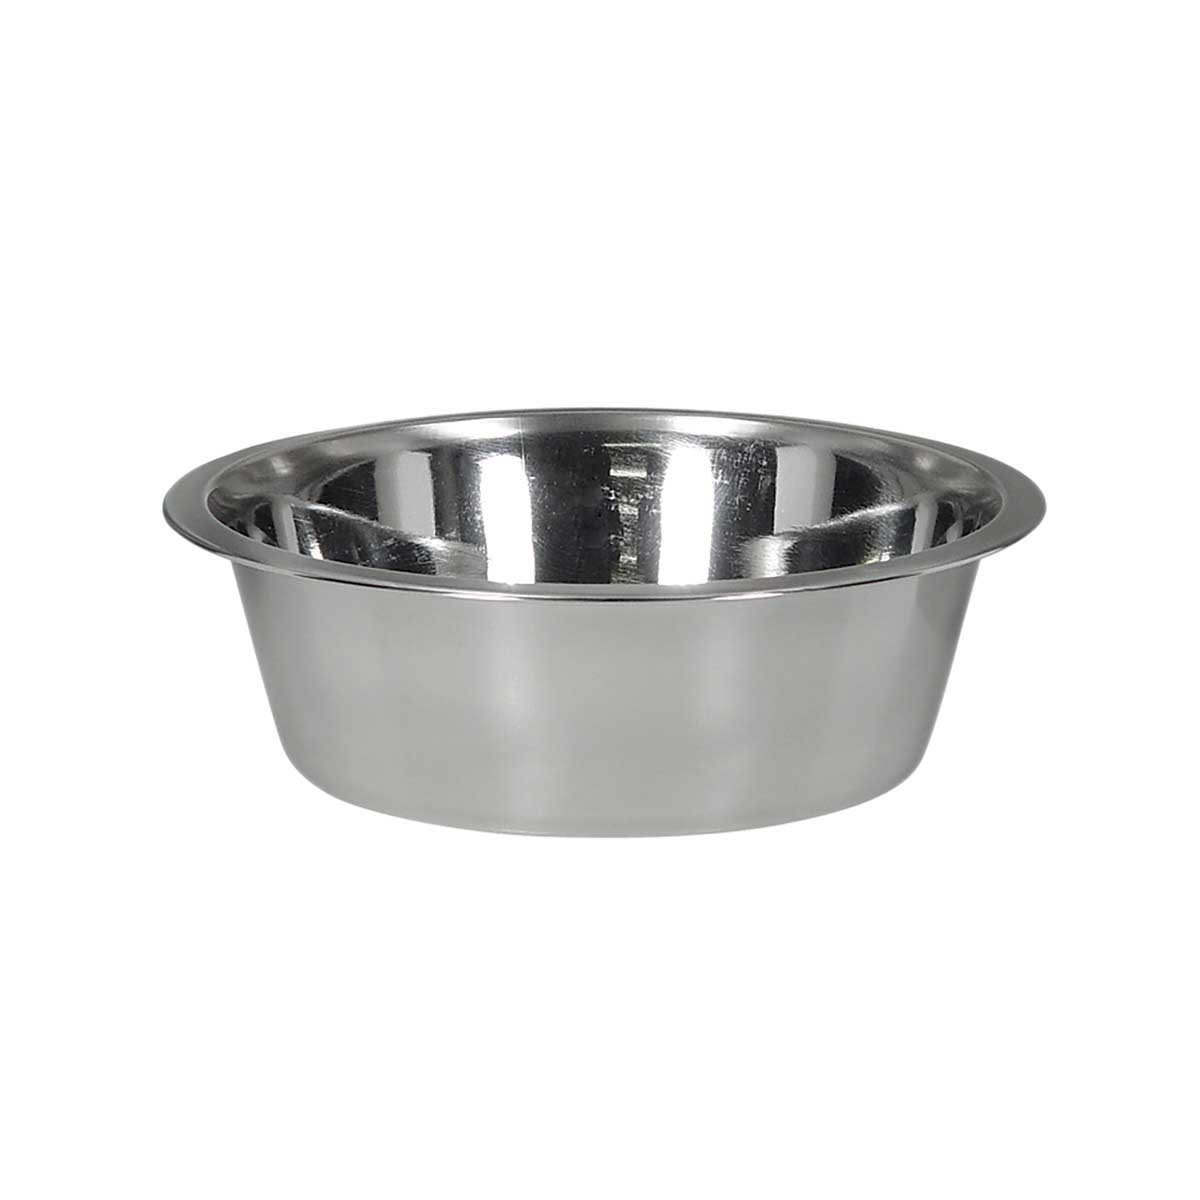 Indipets Stainless Steel Dish for Pets 2 Quart at Ryan's Pet Supplies